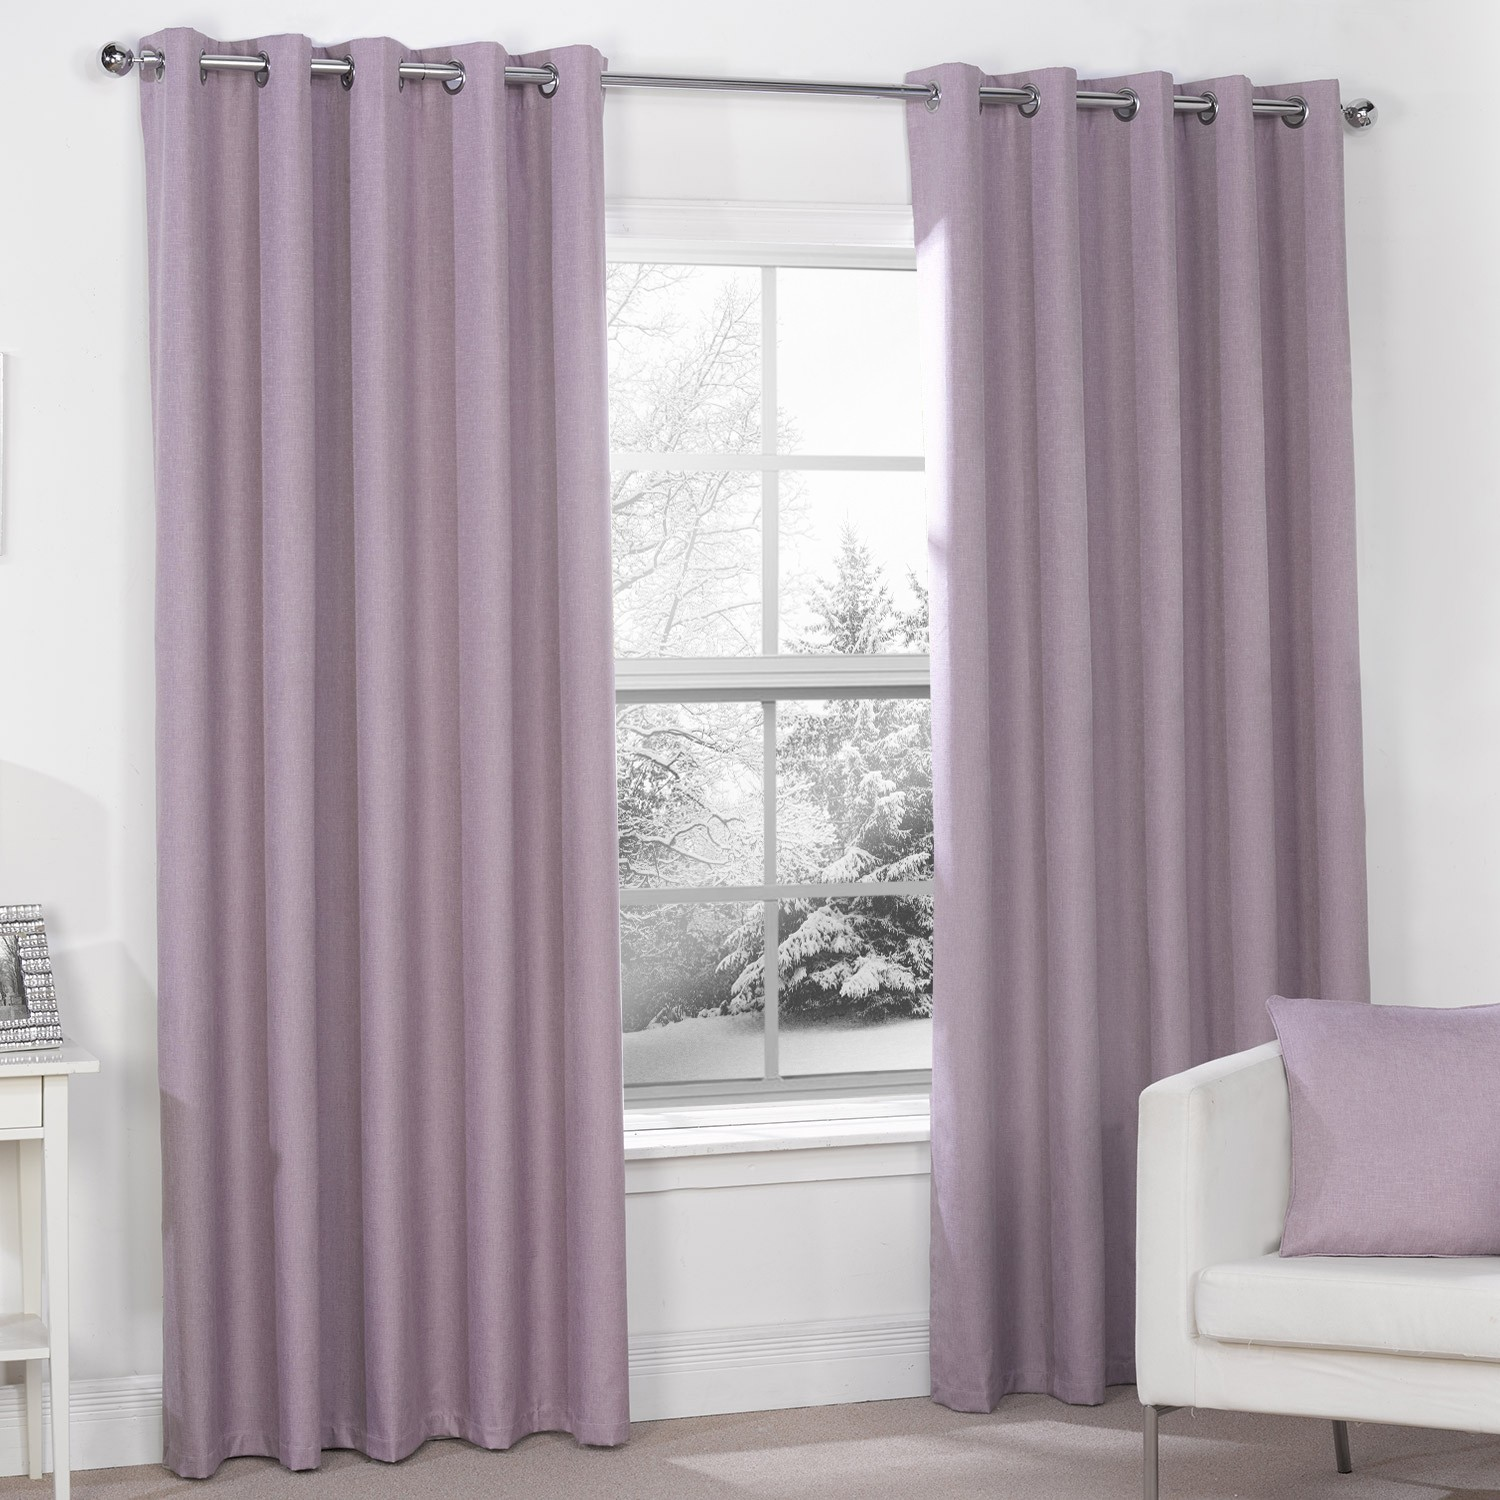 Cheap Blackout Curtains for Inspiring Home Decorating Ideas: Cheap White Blackout Curtains | Where To Buy Blackout Curtains | Cheap Blackout Curtains